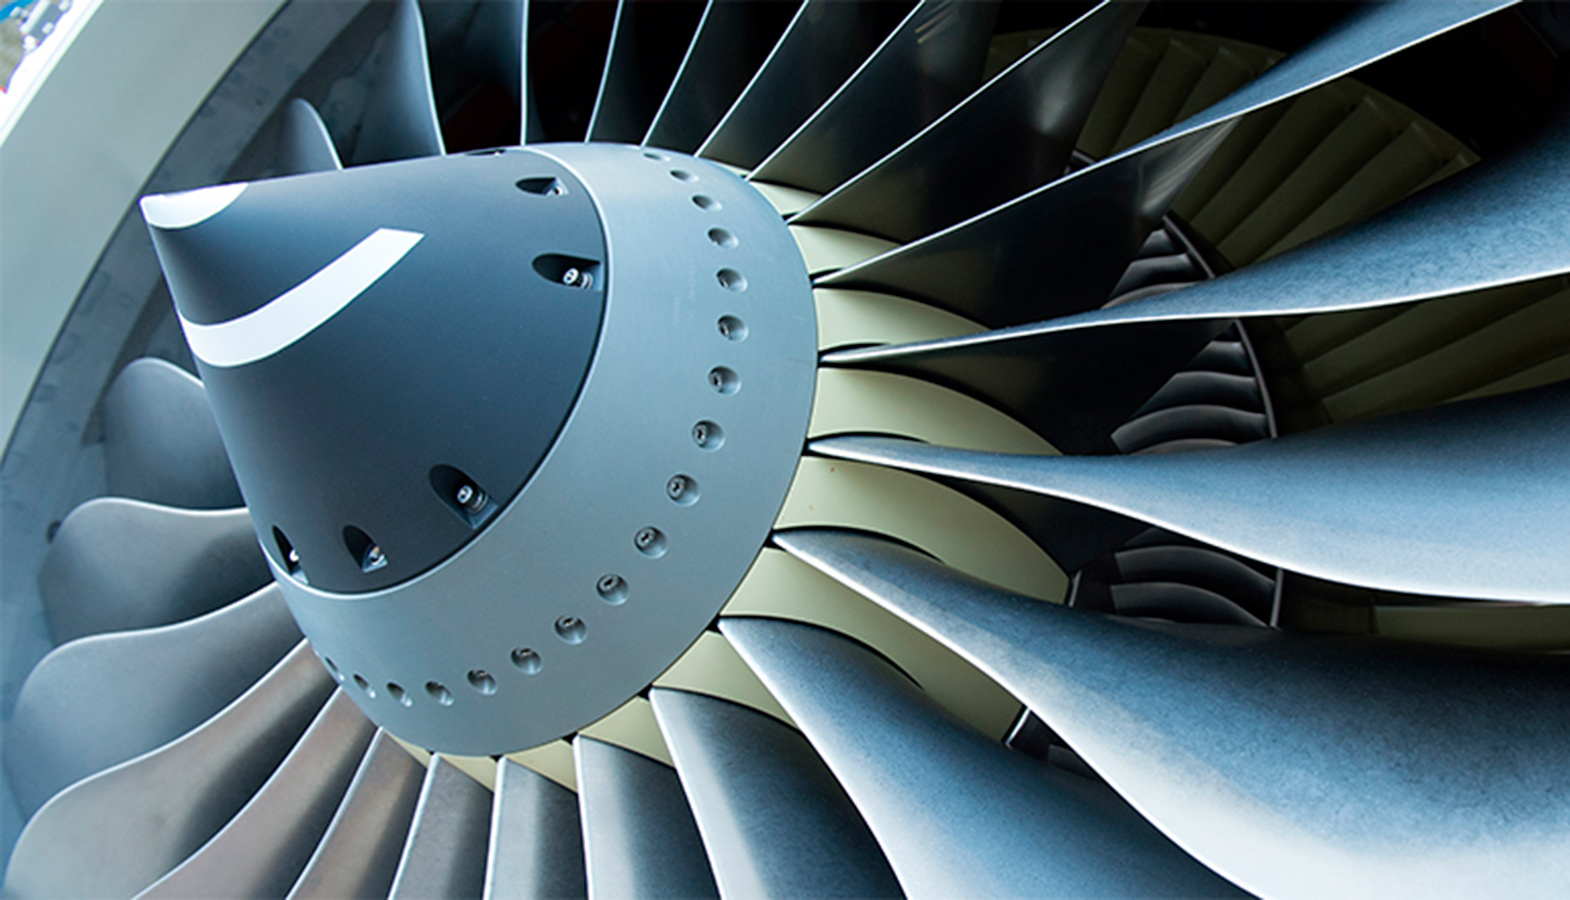 The Russian Engine For The SSJ 100 Will Receive A Certificate In 2023